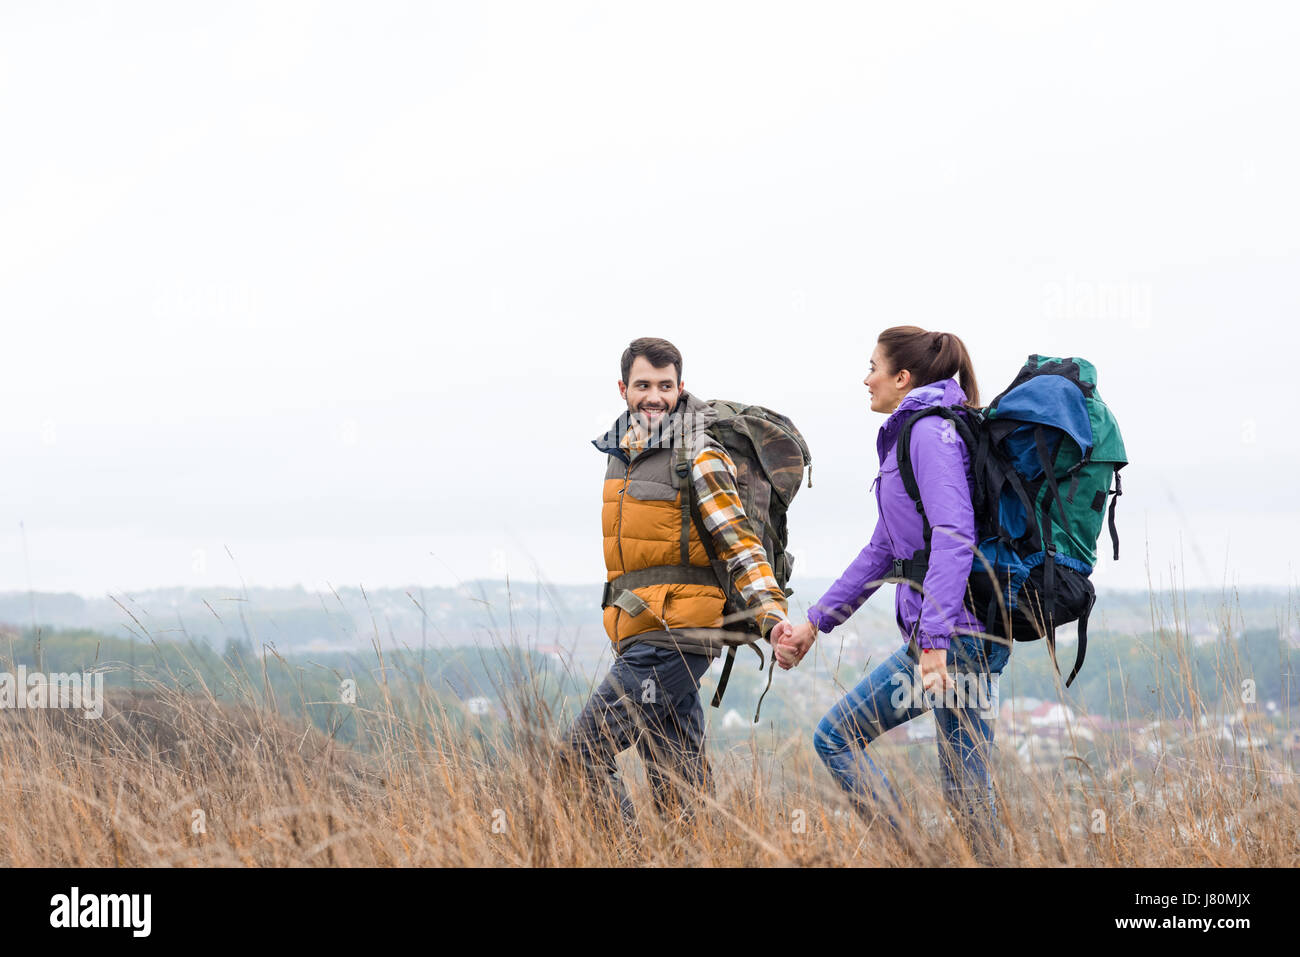 Young smiling couple with backpacks holding hands and walking in tall grass in rural area - Stock Image